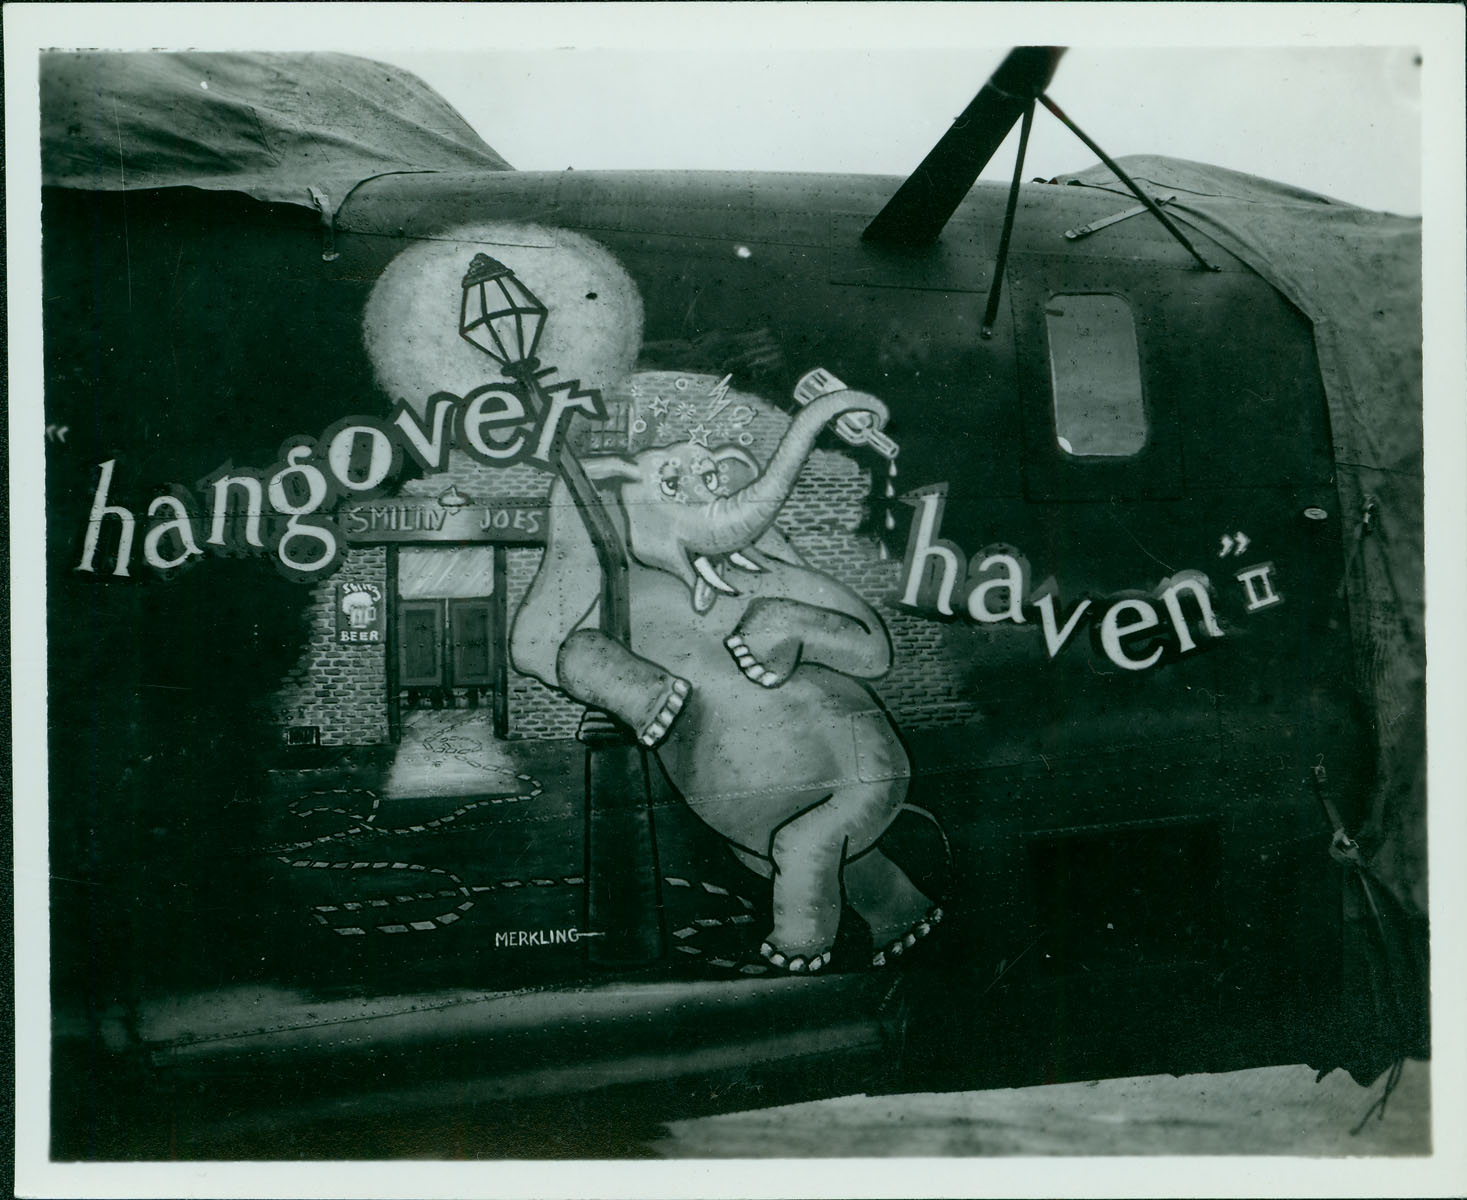 The Hangover Haven II [RG5841-3-4]